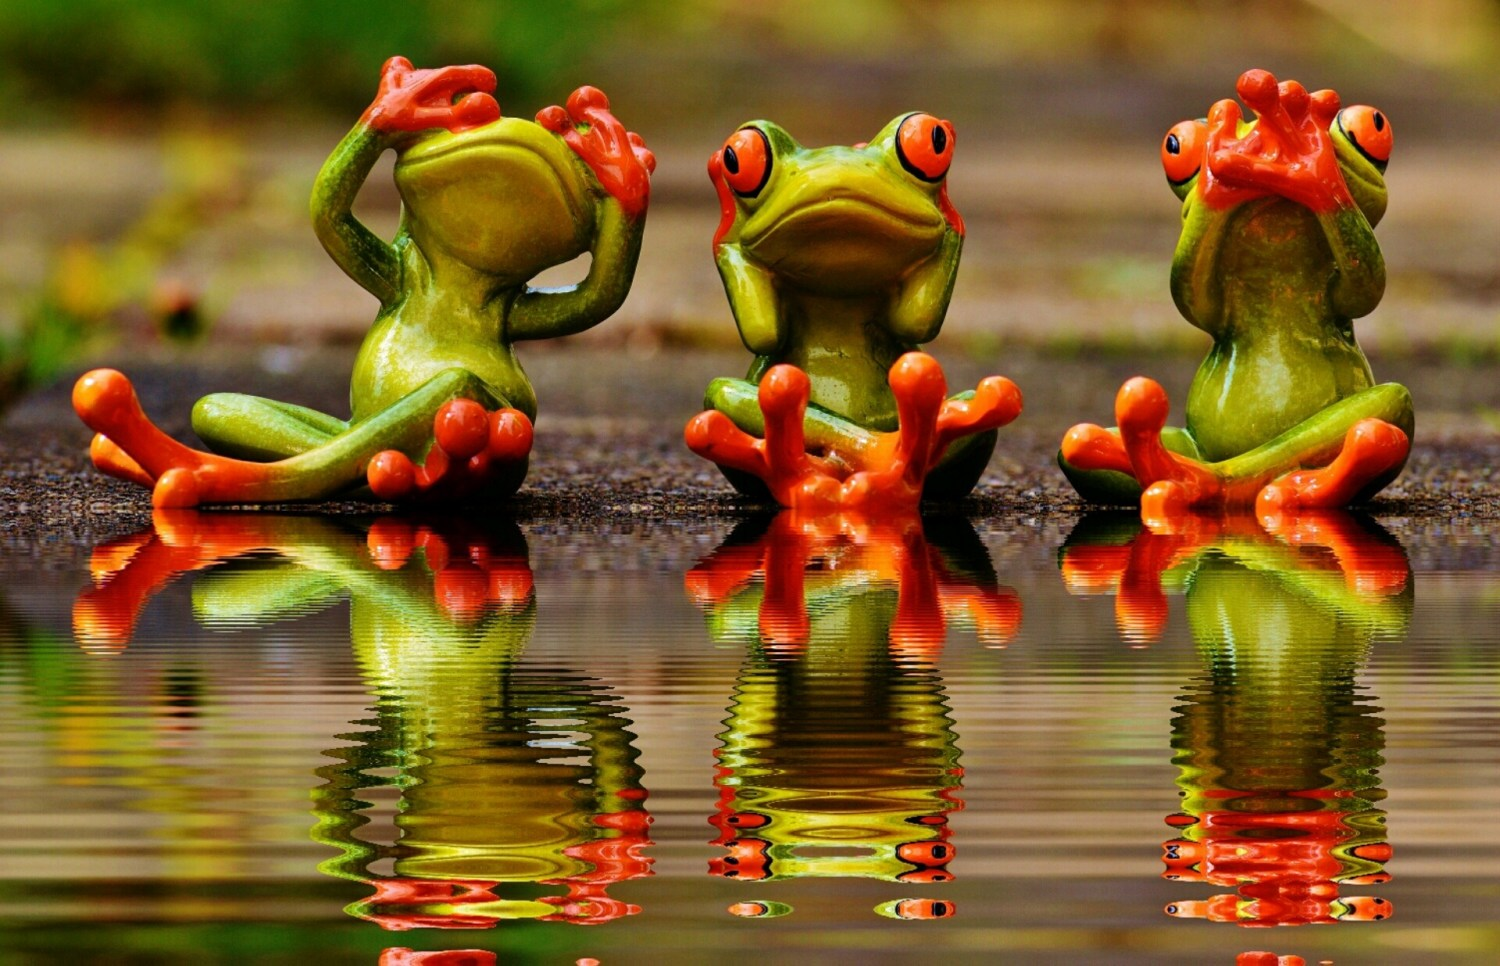 3 frogs hear see speak